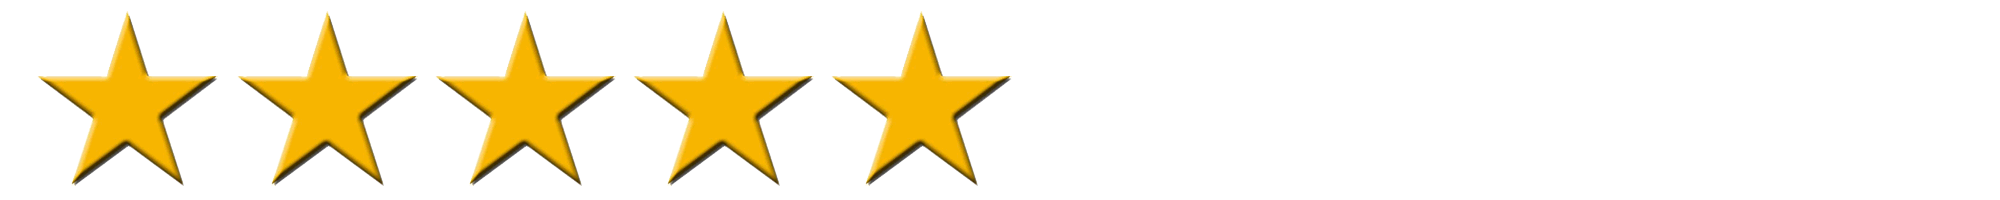 Review-Stars.png